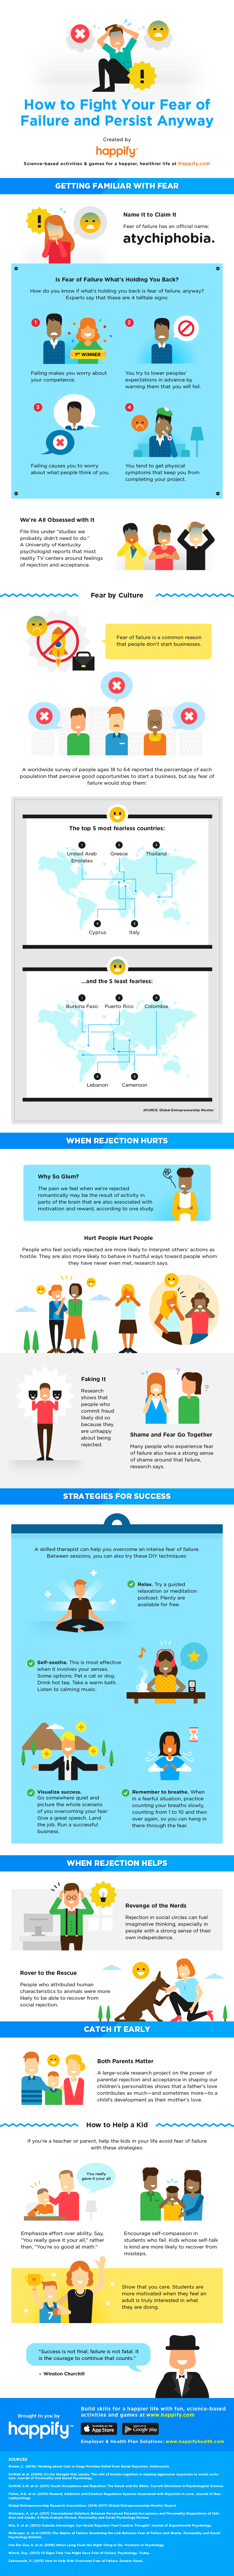 Infographic: How to Deal with Failure and Rejection